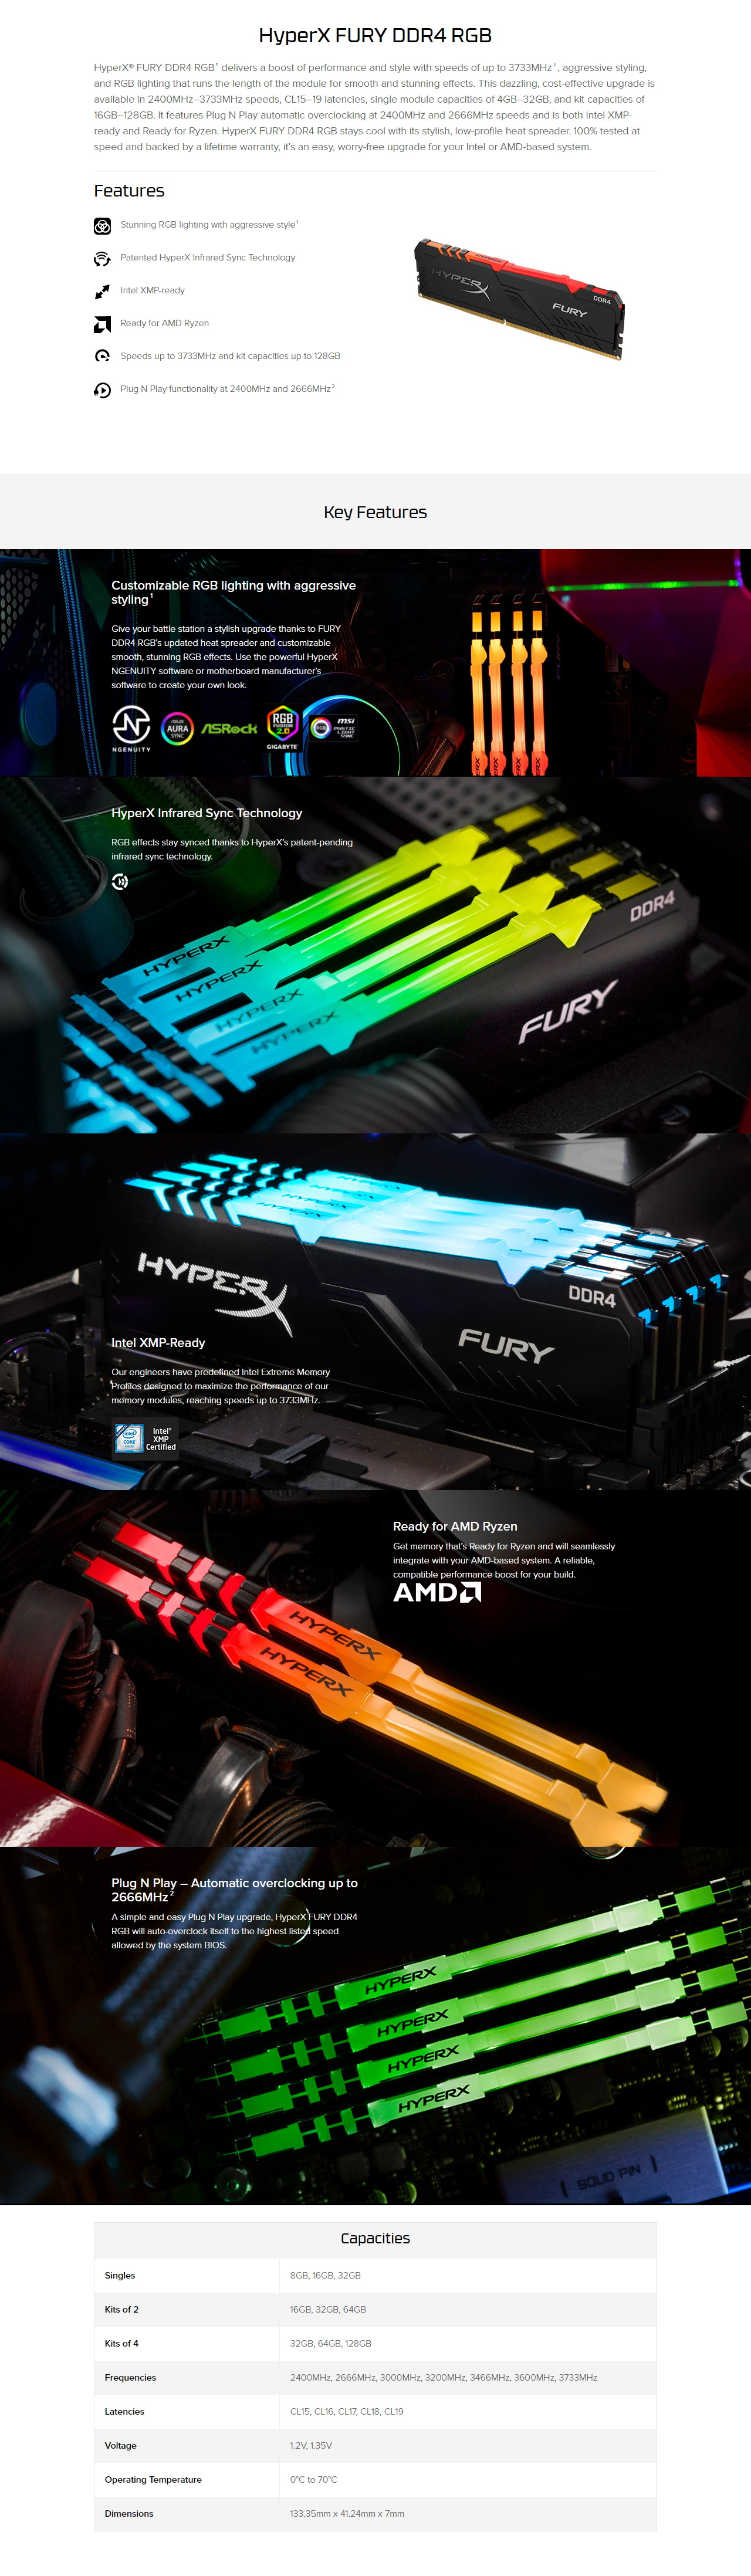 A large marketing image providing additional information about the product Kingston 32GB Kit (2x16GB) DDR4 HyperX Fury RGB C17 3600MHz - Additional alt info not provided